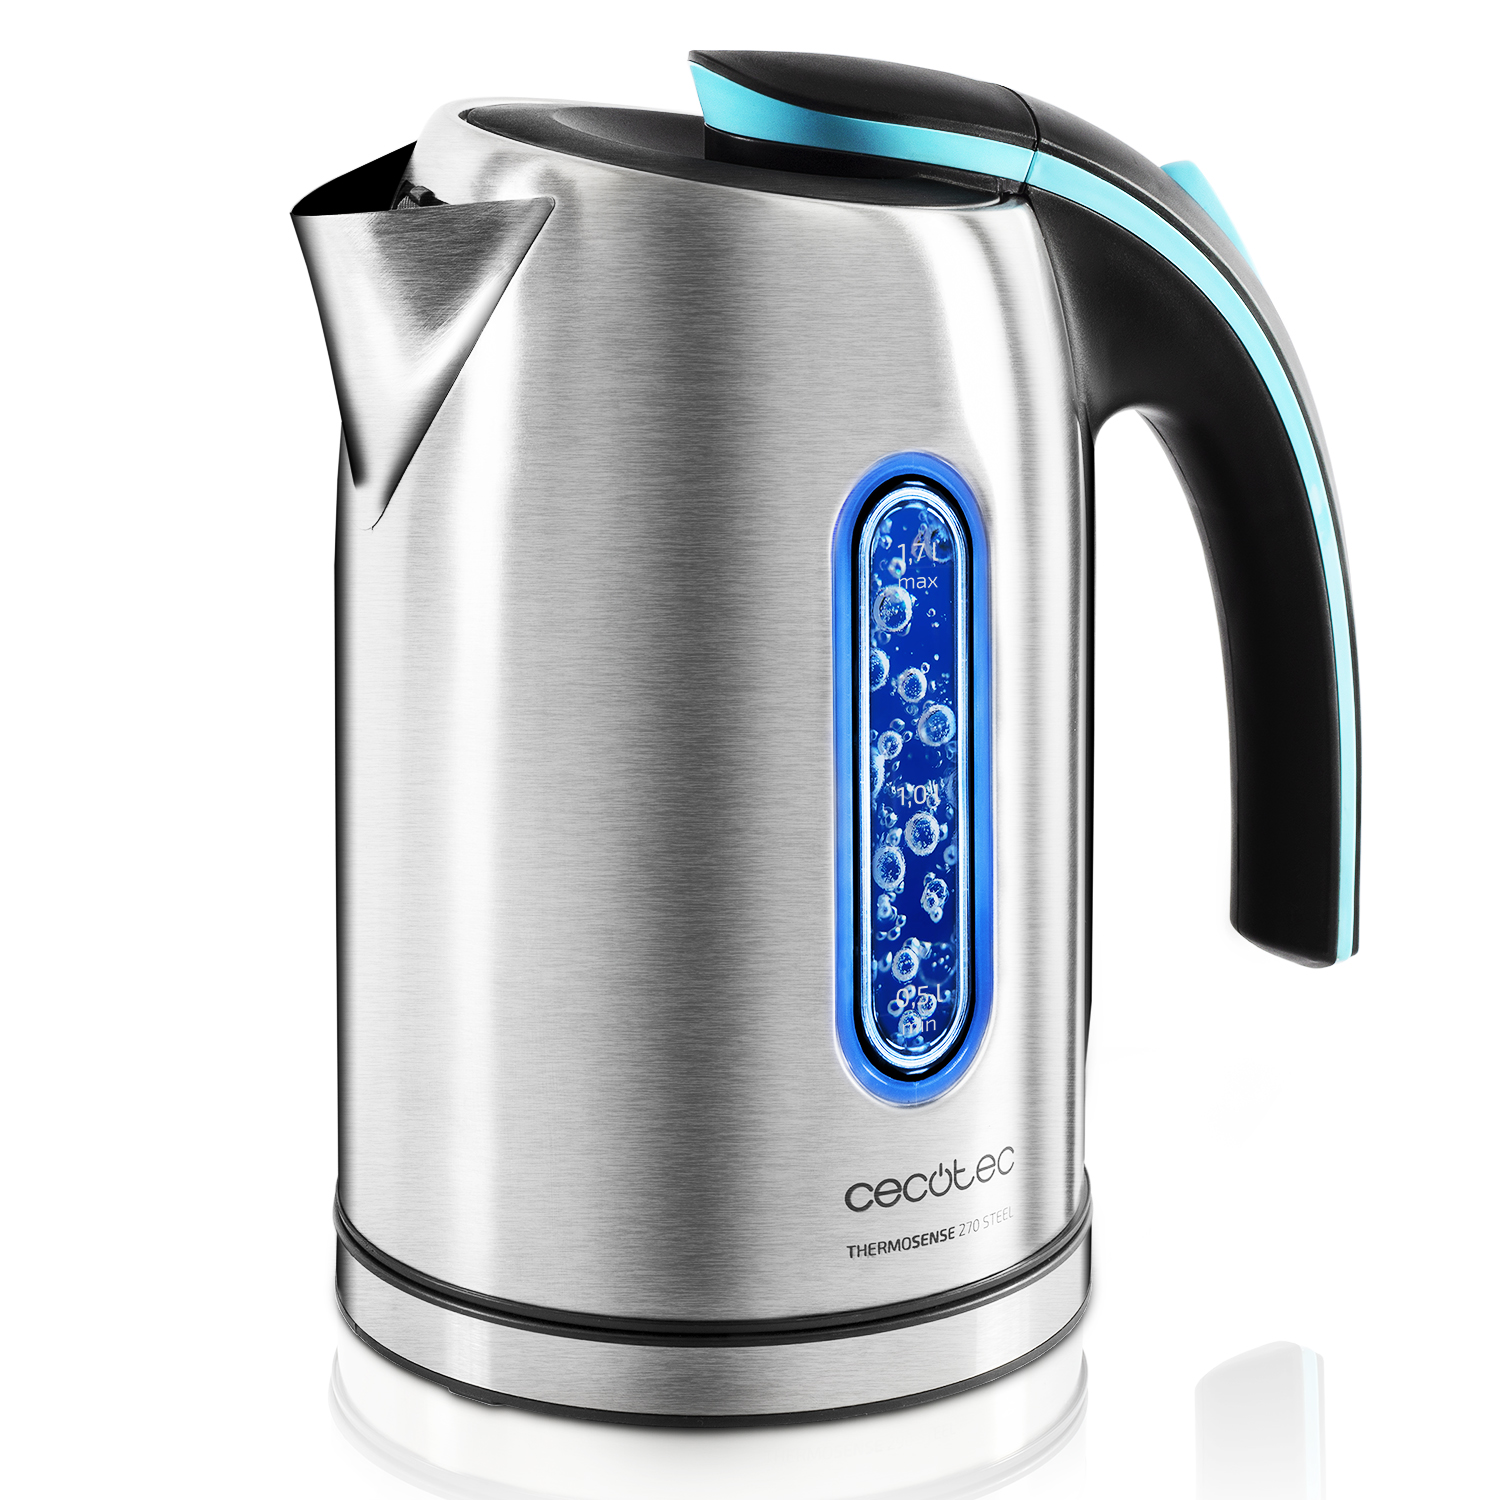 Cecotec ThermoSense 270 Steel Electric Kettle Heats Up To 8 Cups Water 1,7L Capacity 2200W Double Protection System With Filter